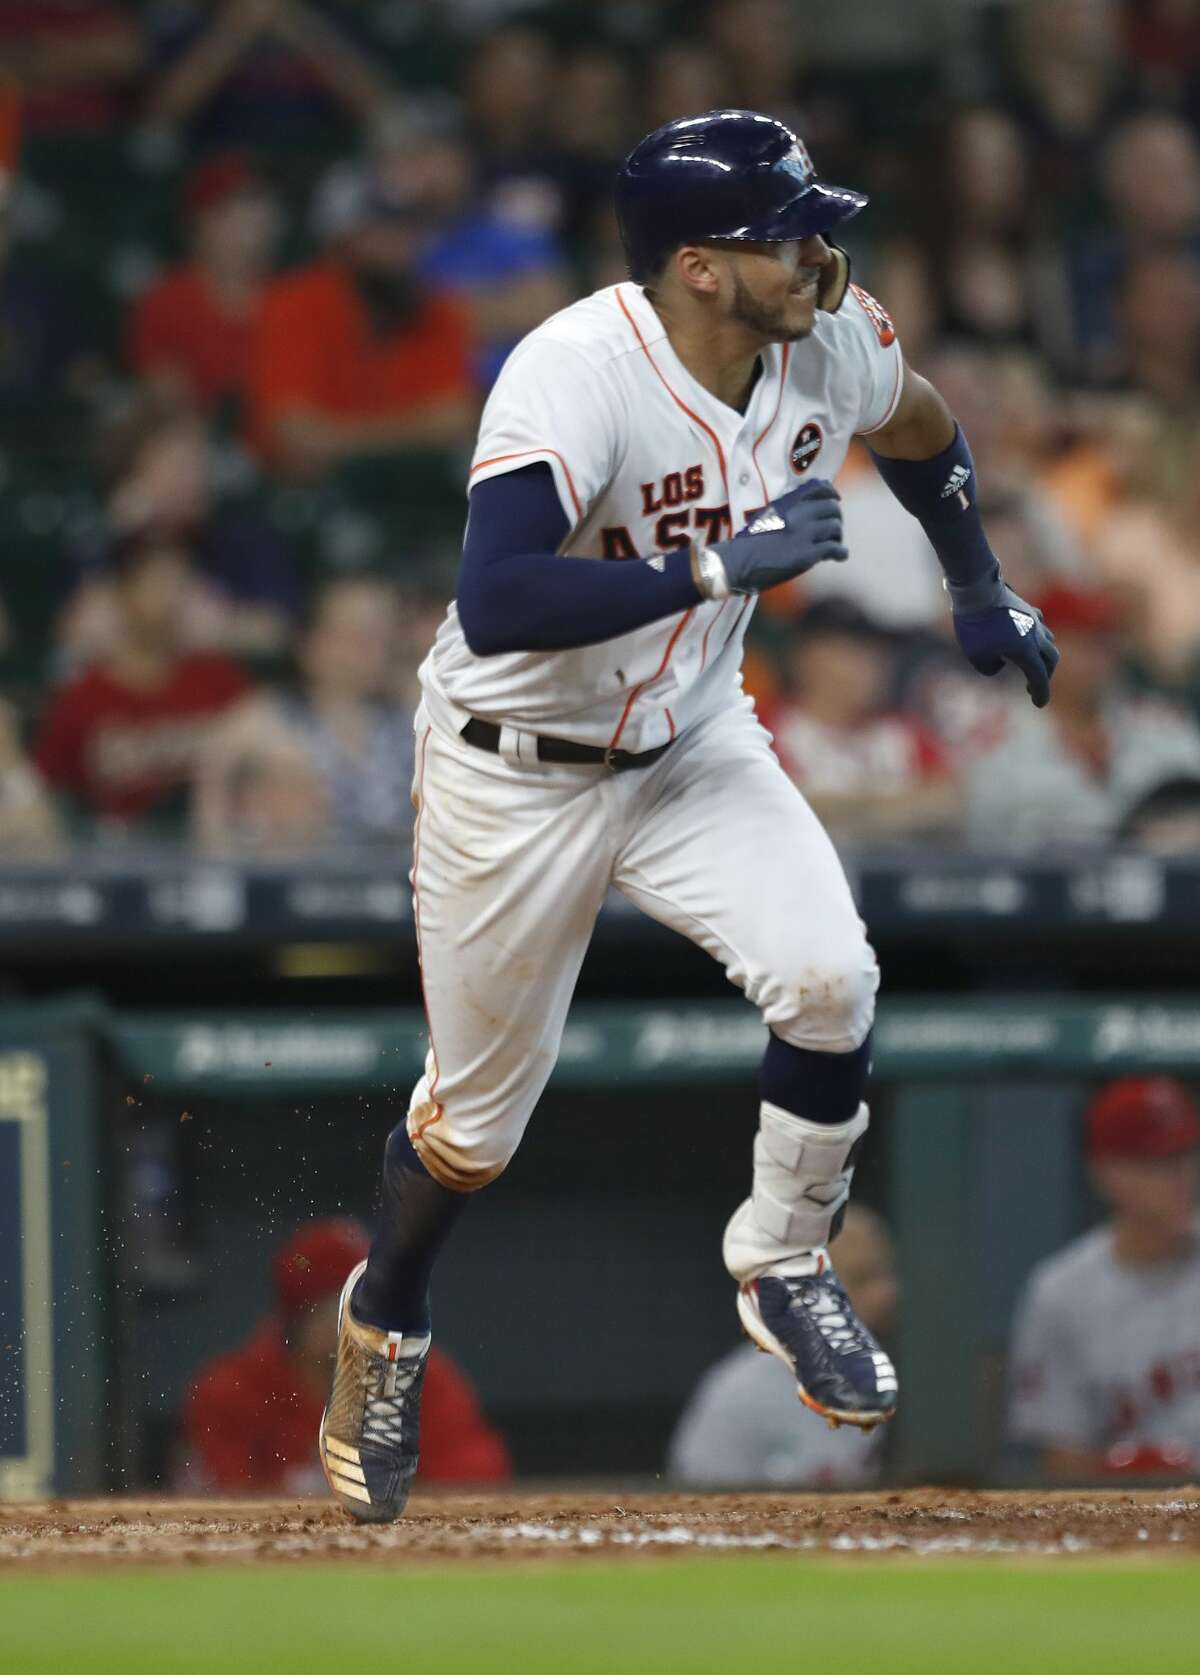 Houston Astros Carlos Correa (1) runs up the line on his RBI single during the seventh inning of an MLB baseball game at Minute Maid Park, Saturday, Sept. 23, 2017, in Houston. ( Karen Warren / Houston Chronicle )